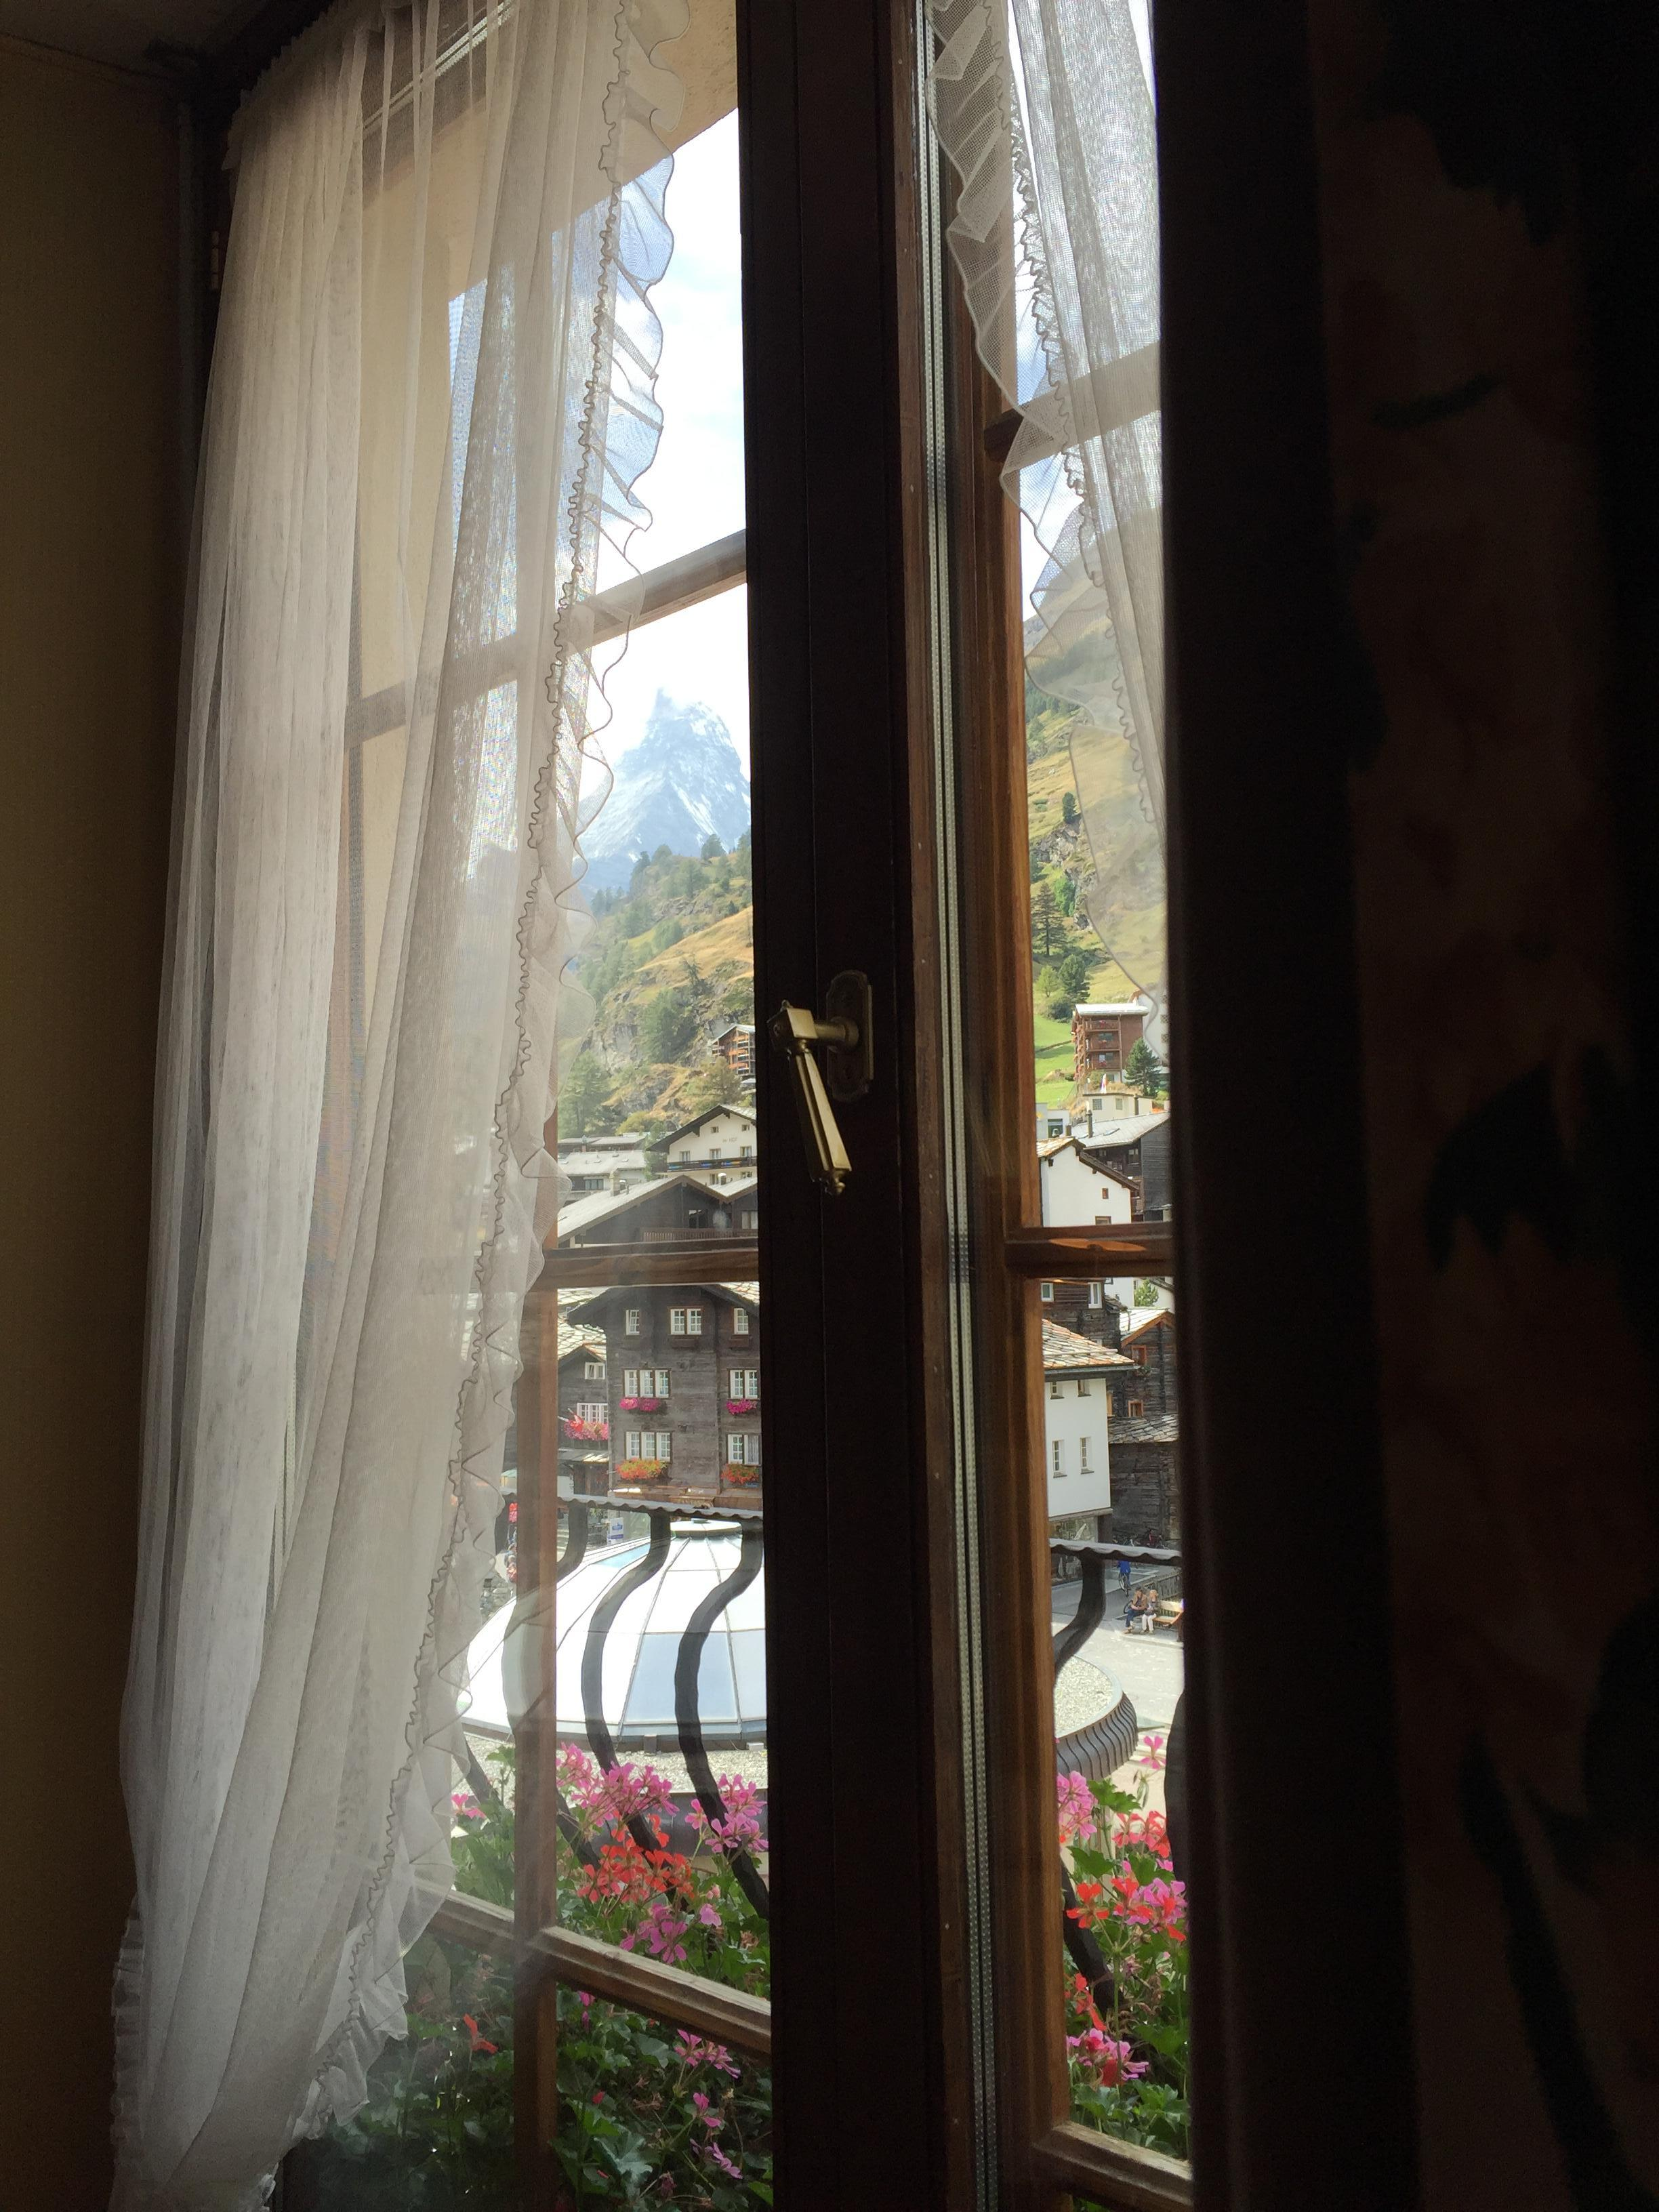 View from open window